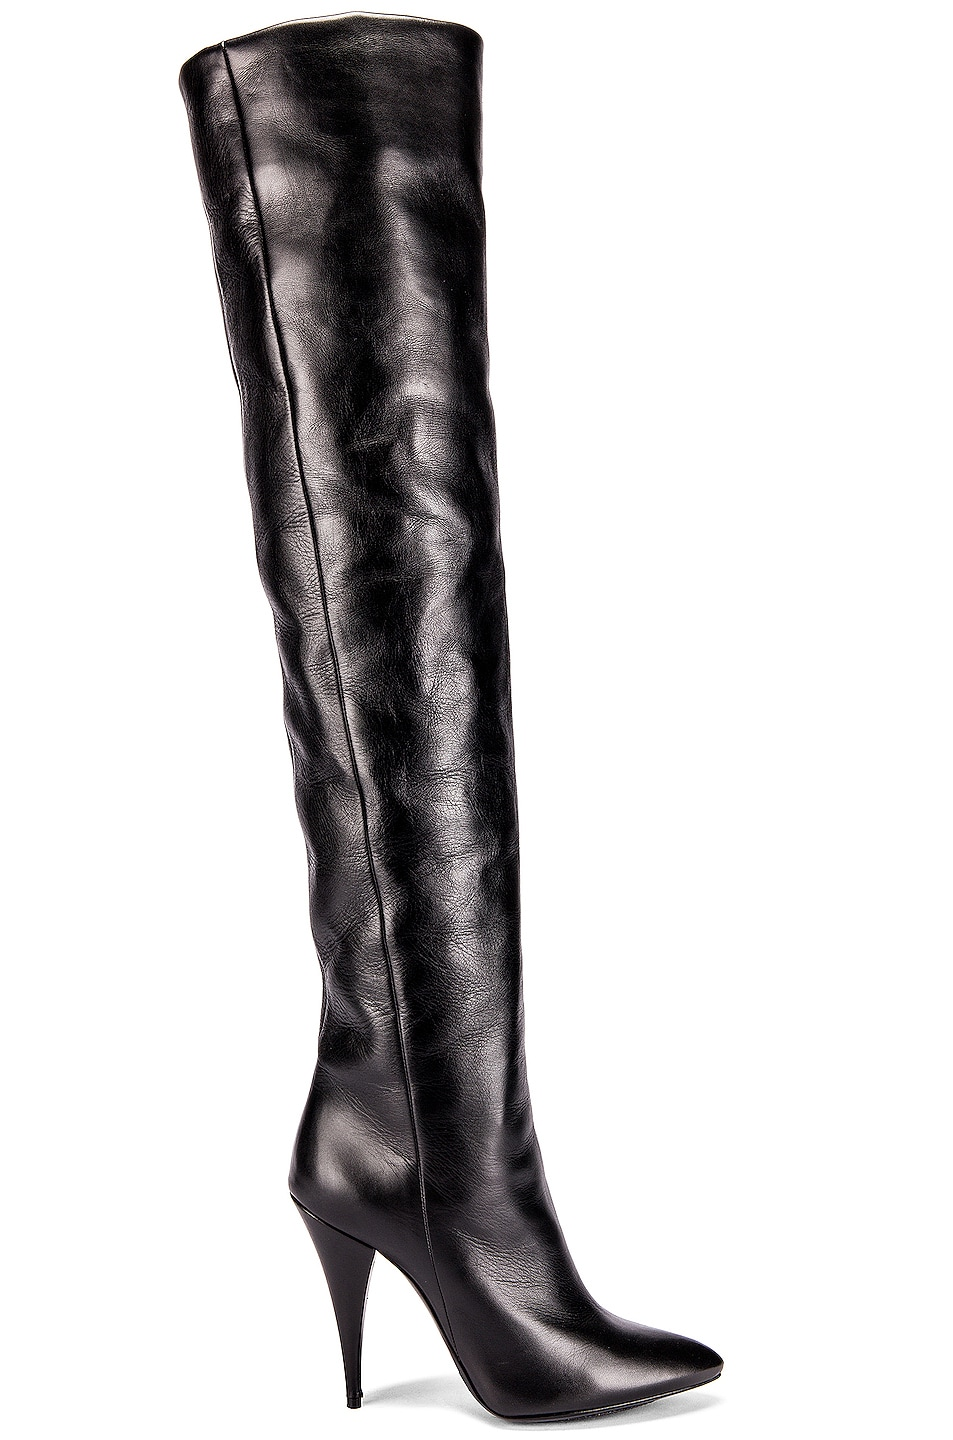 Image 1 of Saint Laurent Kiki Knee High Boots in Black